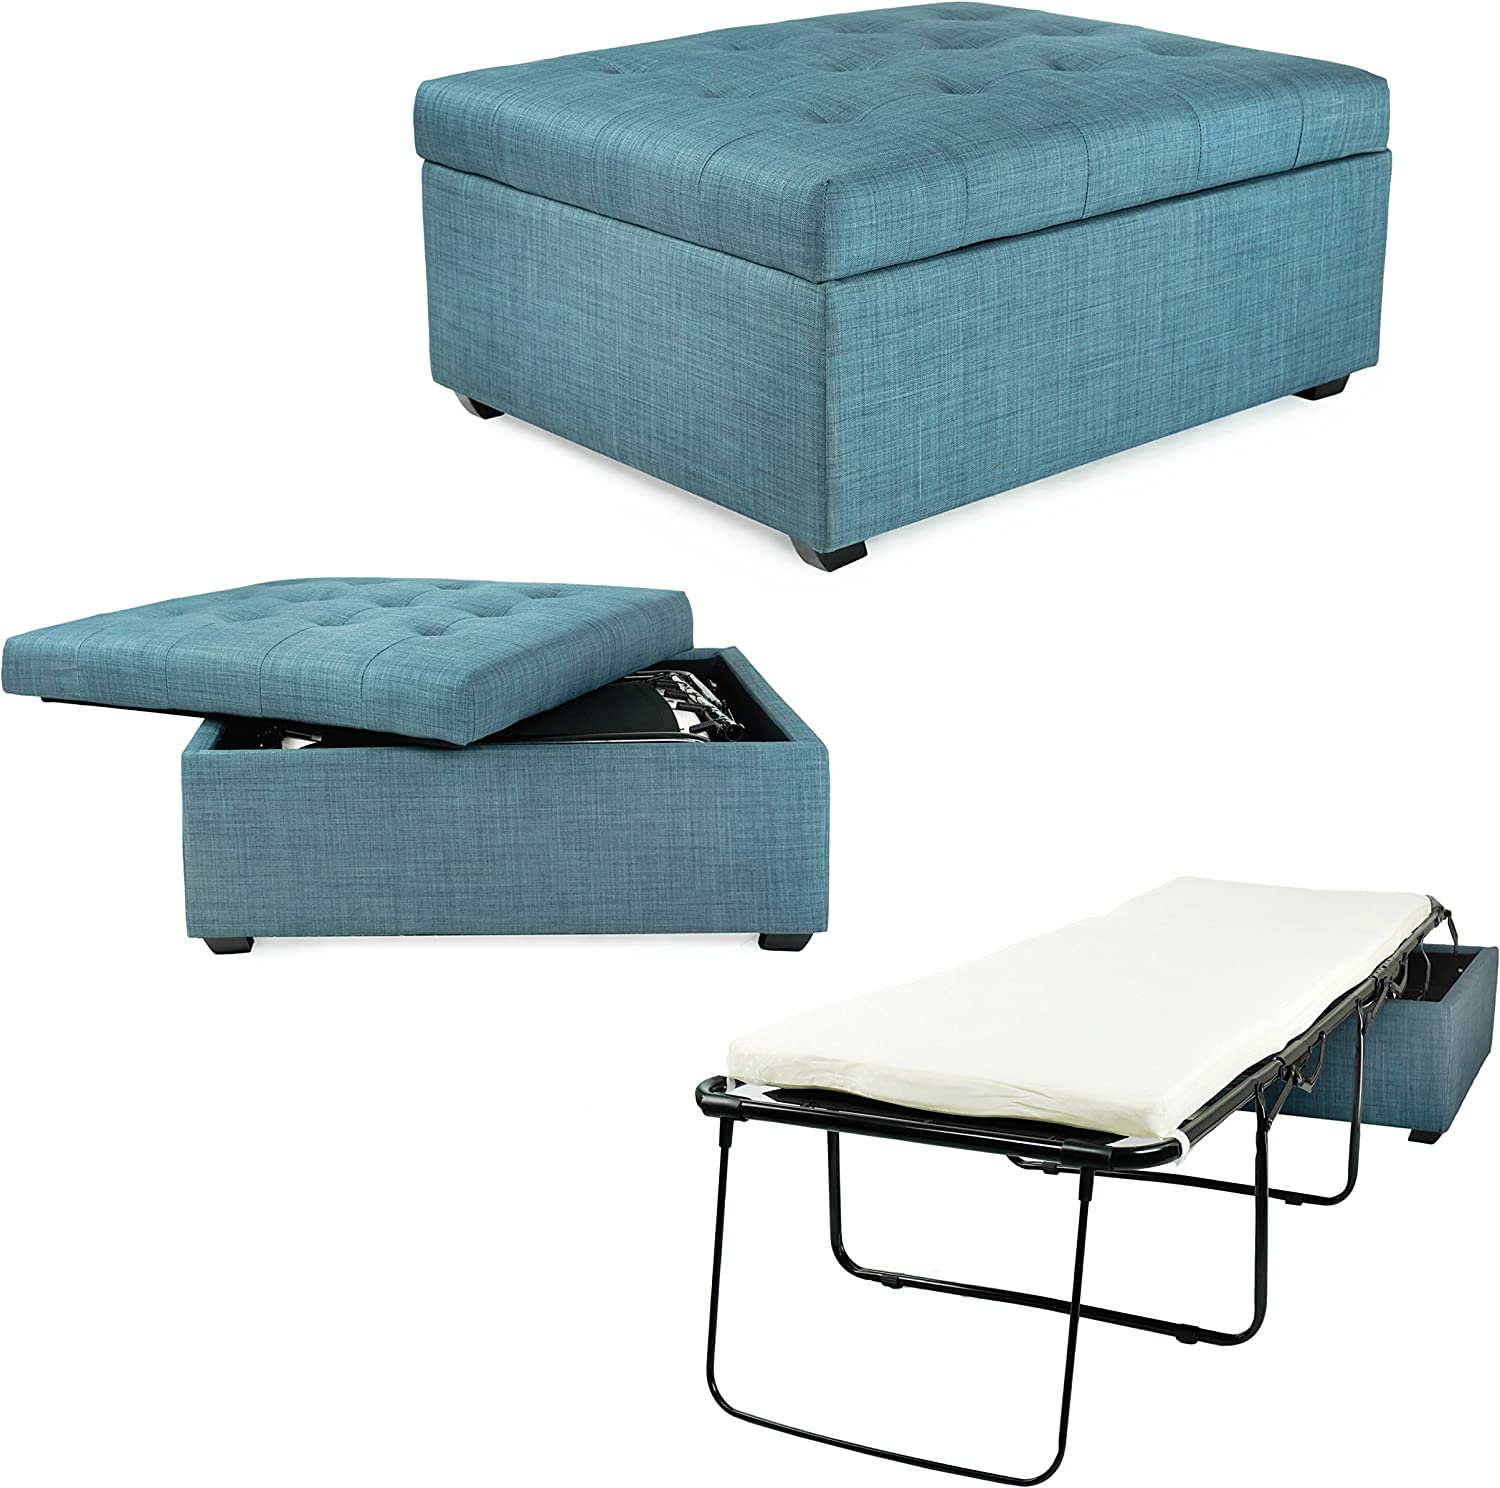 - Amazon.com: SpaceMaster IBed Convertible Ottoman With Fold Out